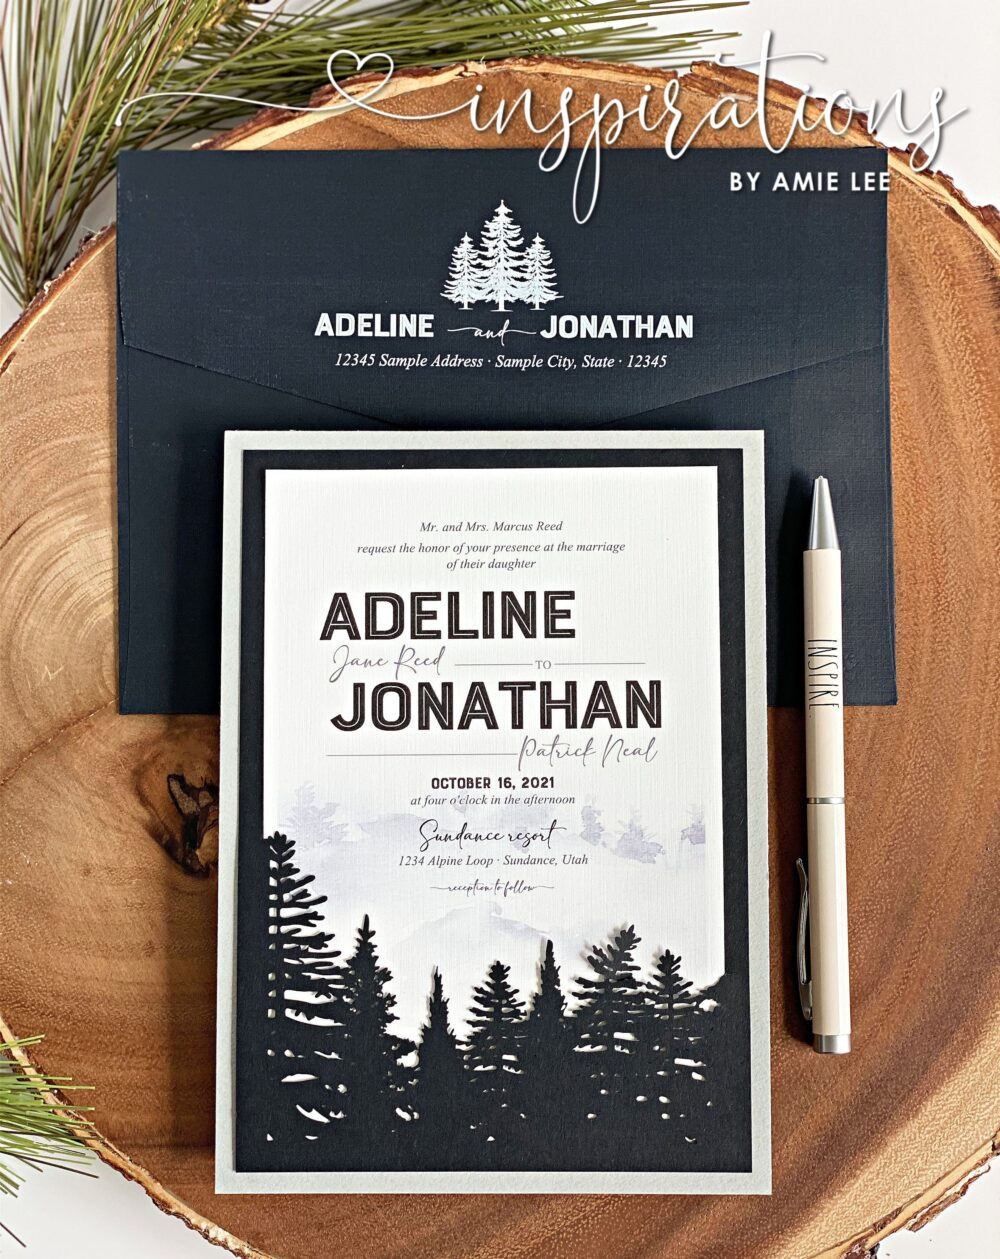 Rustic Forest Wedding Invitations, Elegant Woods Wedding, Elegance, Classic in The Woods, in Mountains